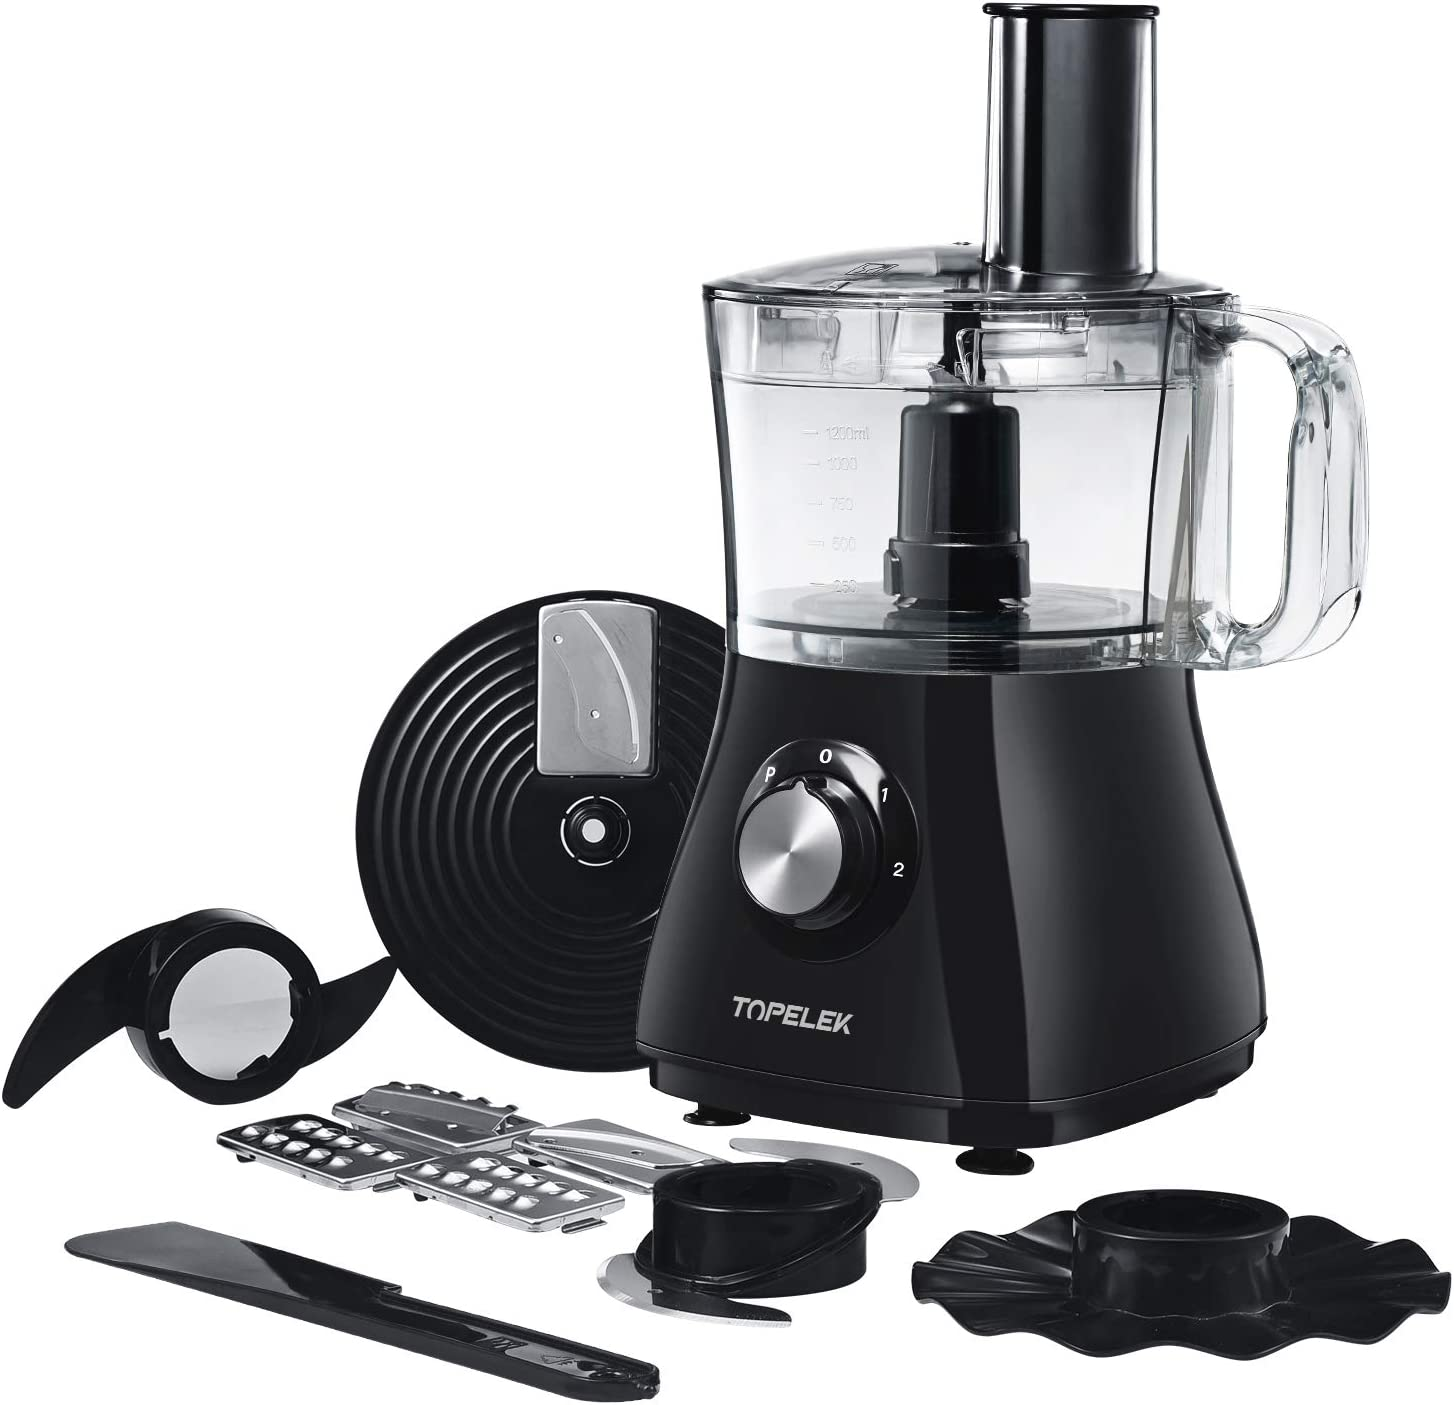 Food Processor, TOPELEK Food Processor Blender and Chopper, 2L Large Capacity, 2 Speed Options and Pulse Function, Chop, Puree, Shred and Slice for Meat, Vegetables, Fruits and Nuts, 500W